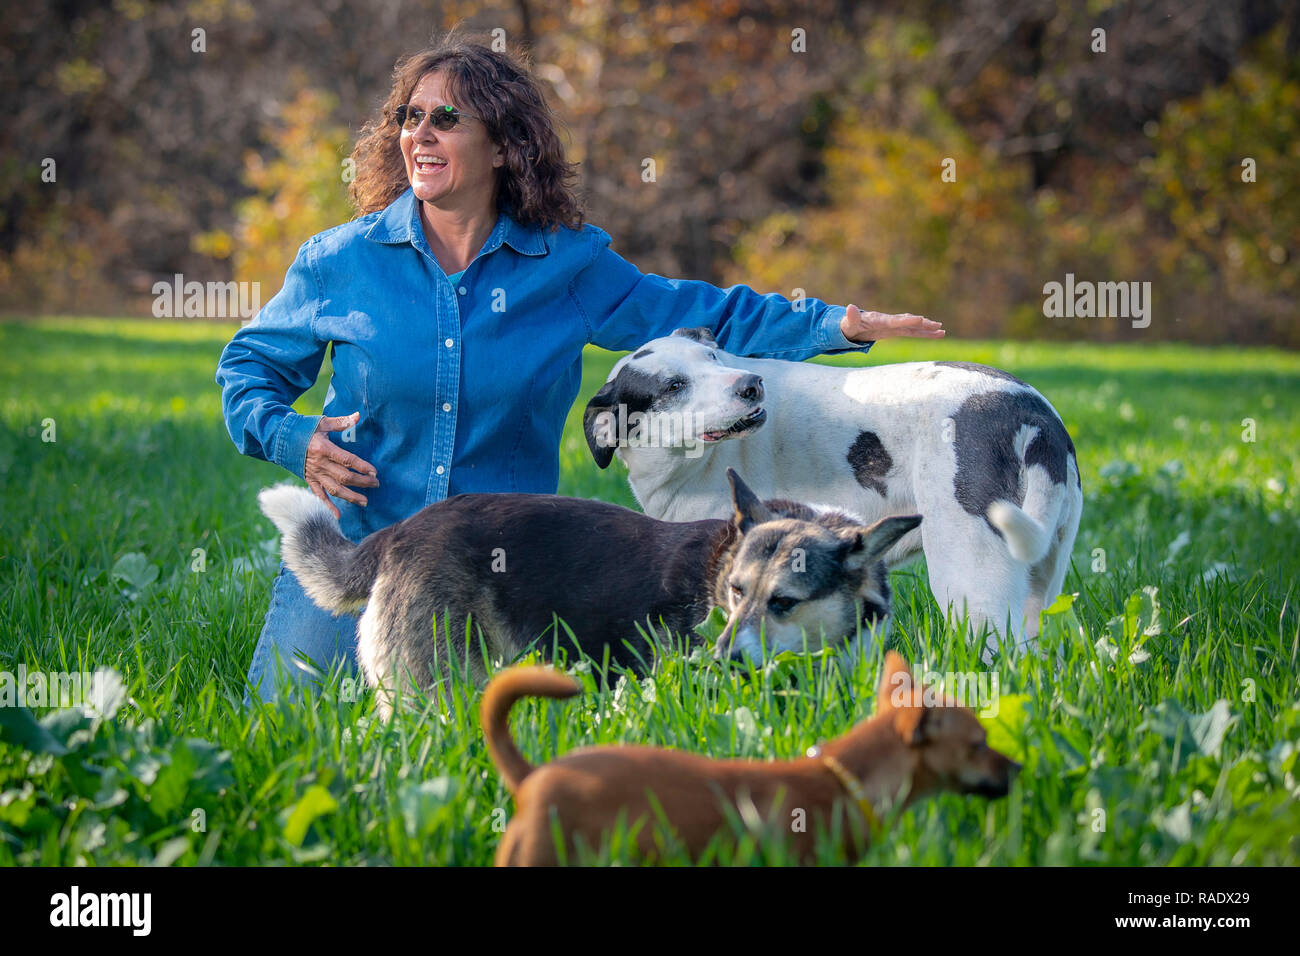 Tammy Higgins, a multi-generational Native American rancher who raises 80 head of cattle on her farm plays with her family dogs in of Okfuskee County, Oklahoma. - Stock Image